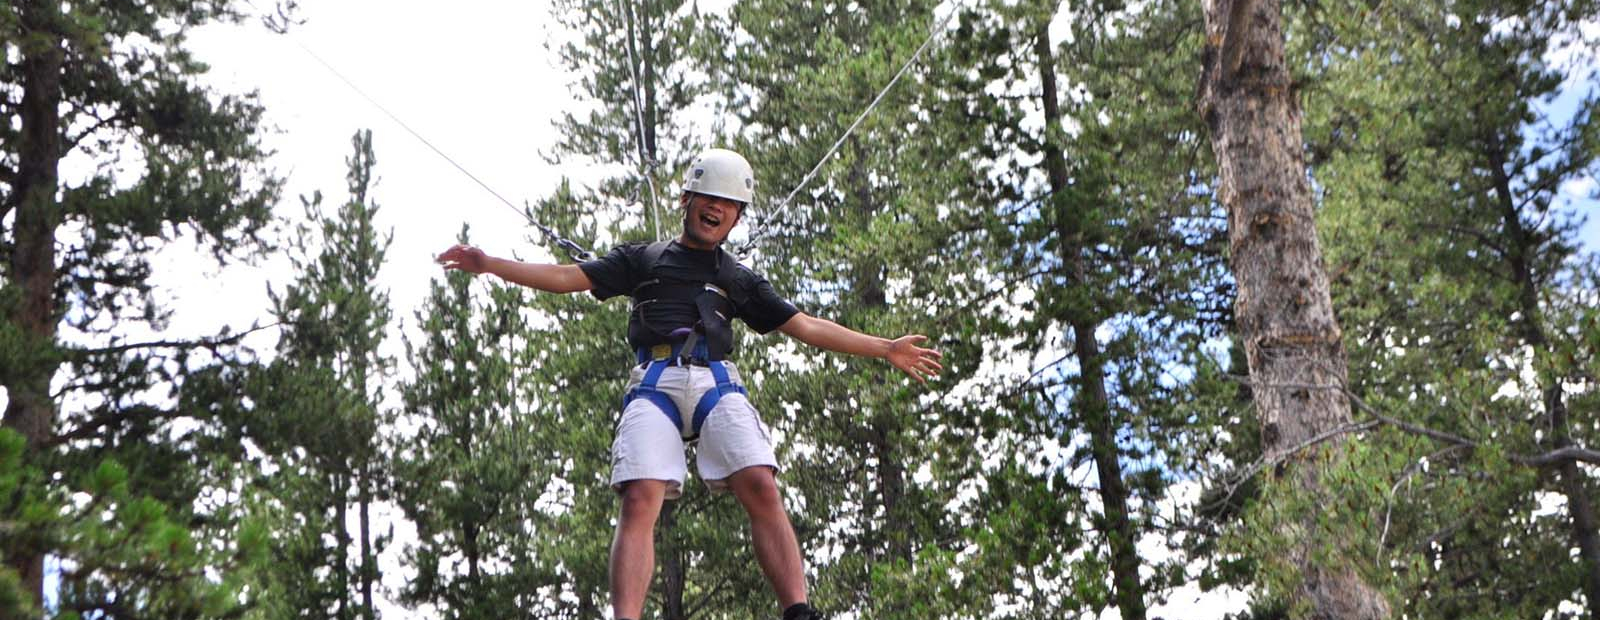 A participant on the ropes challenge course.